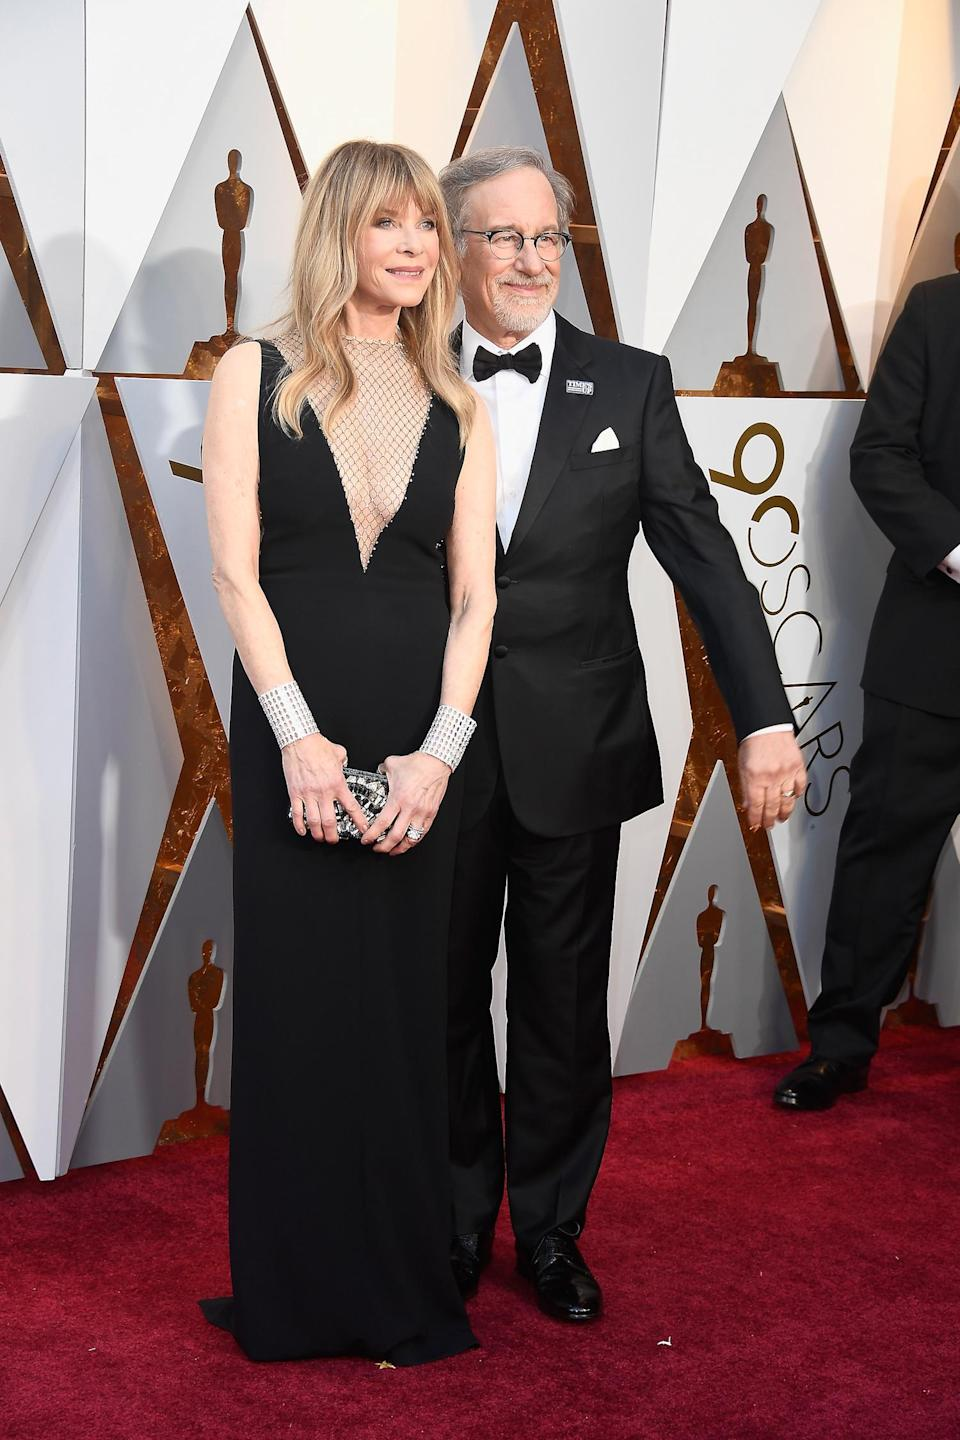 <p>Kate Capshaw covered up her chest with sheer fabric. (Photo by Frazer Harrison/Getty Images) </p>